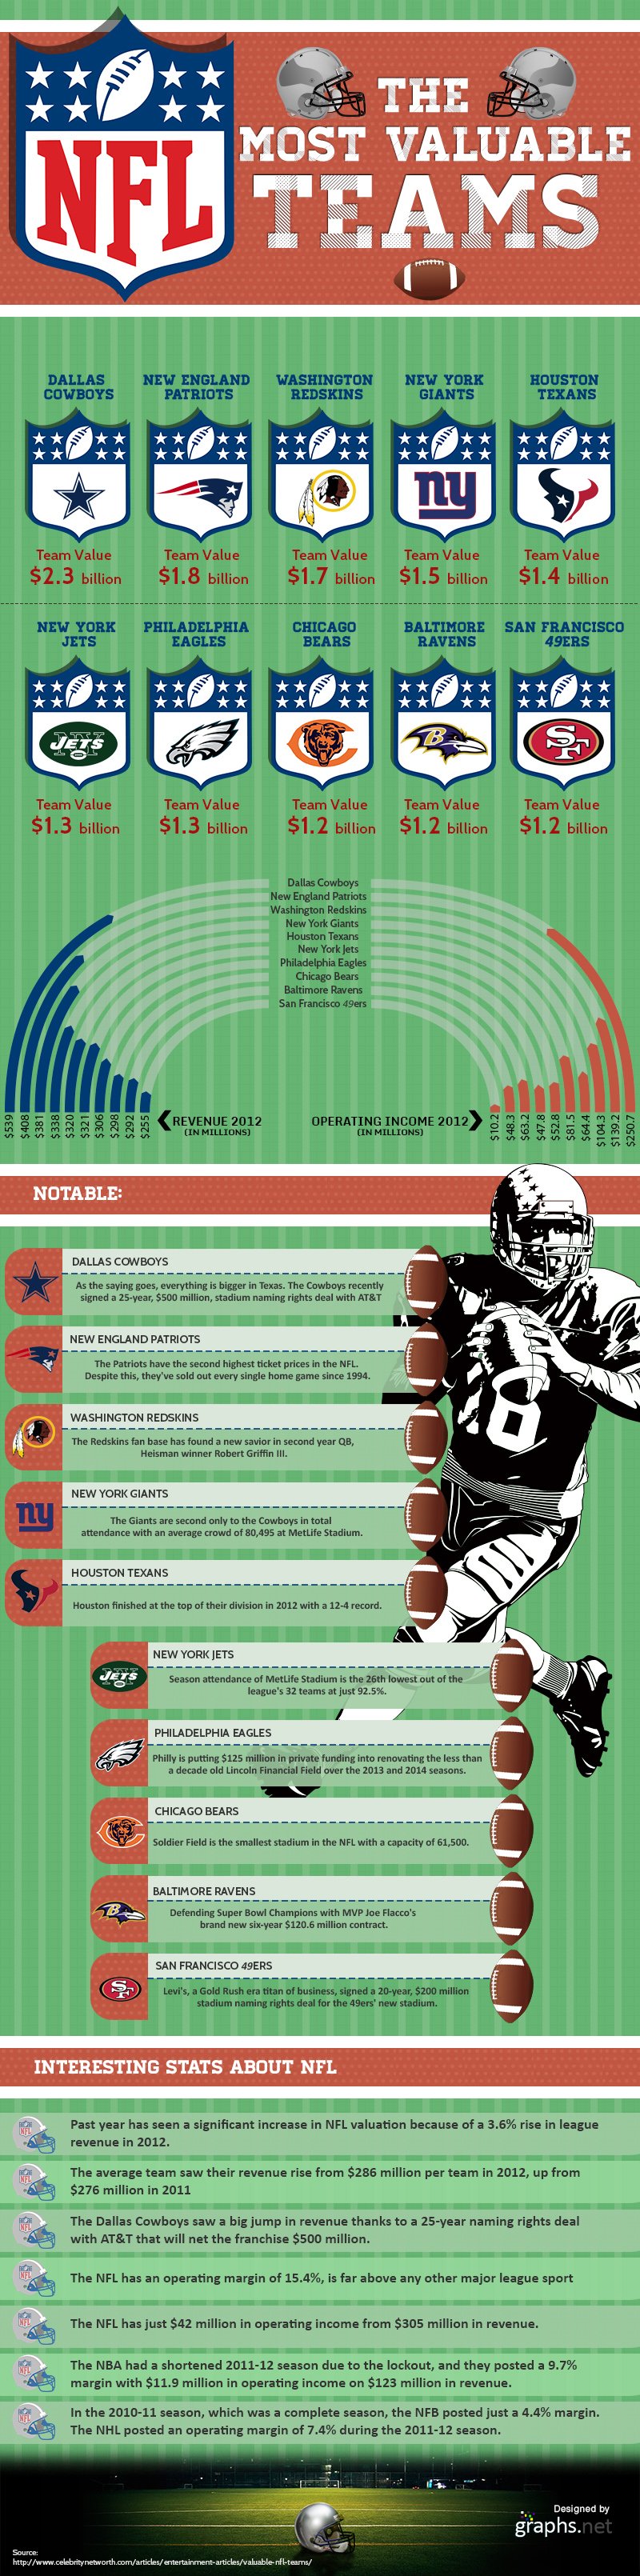 The Most Valuable NFL Teams